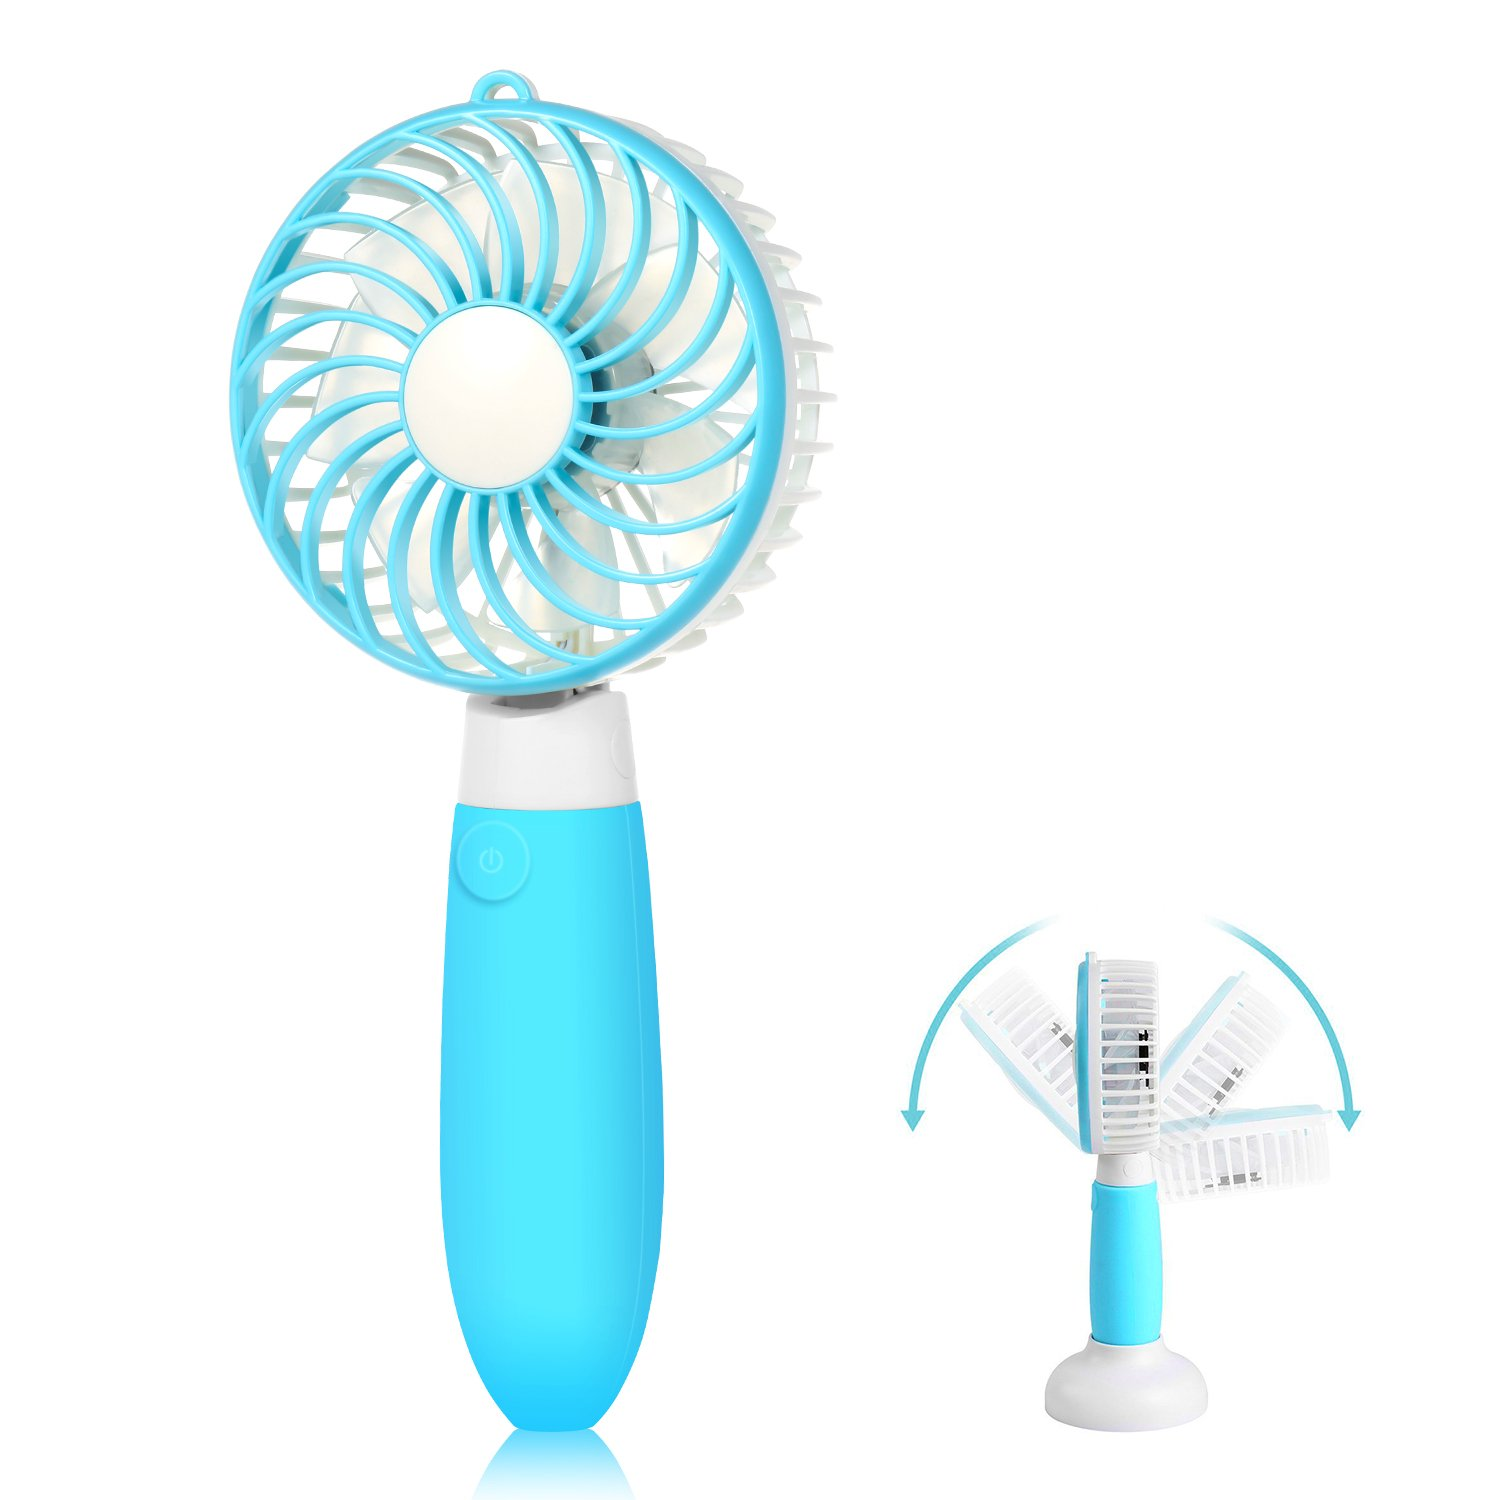 Anorson Personal Handheld Fan, Battery Operated Mini Fan Portable Rechargeable USB with 3 Speeds for Home Office Outdoors Travel (Blue)